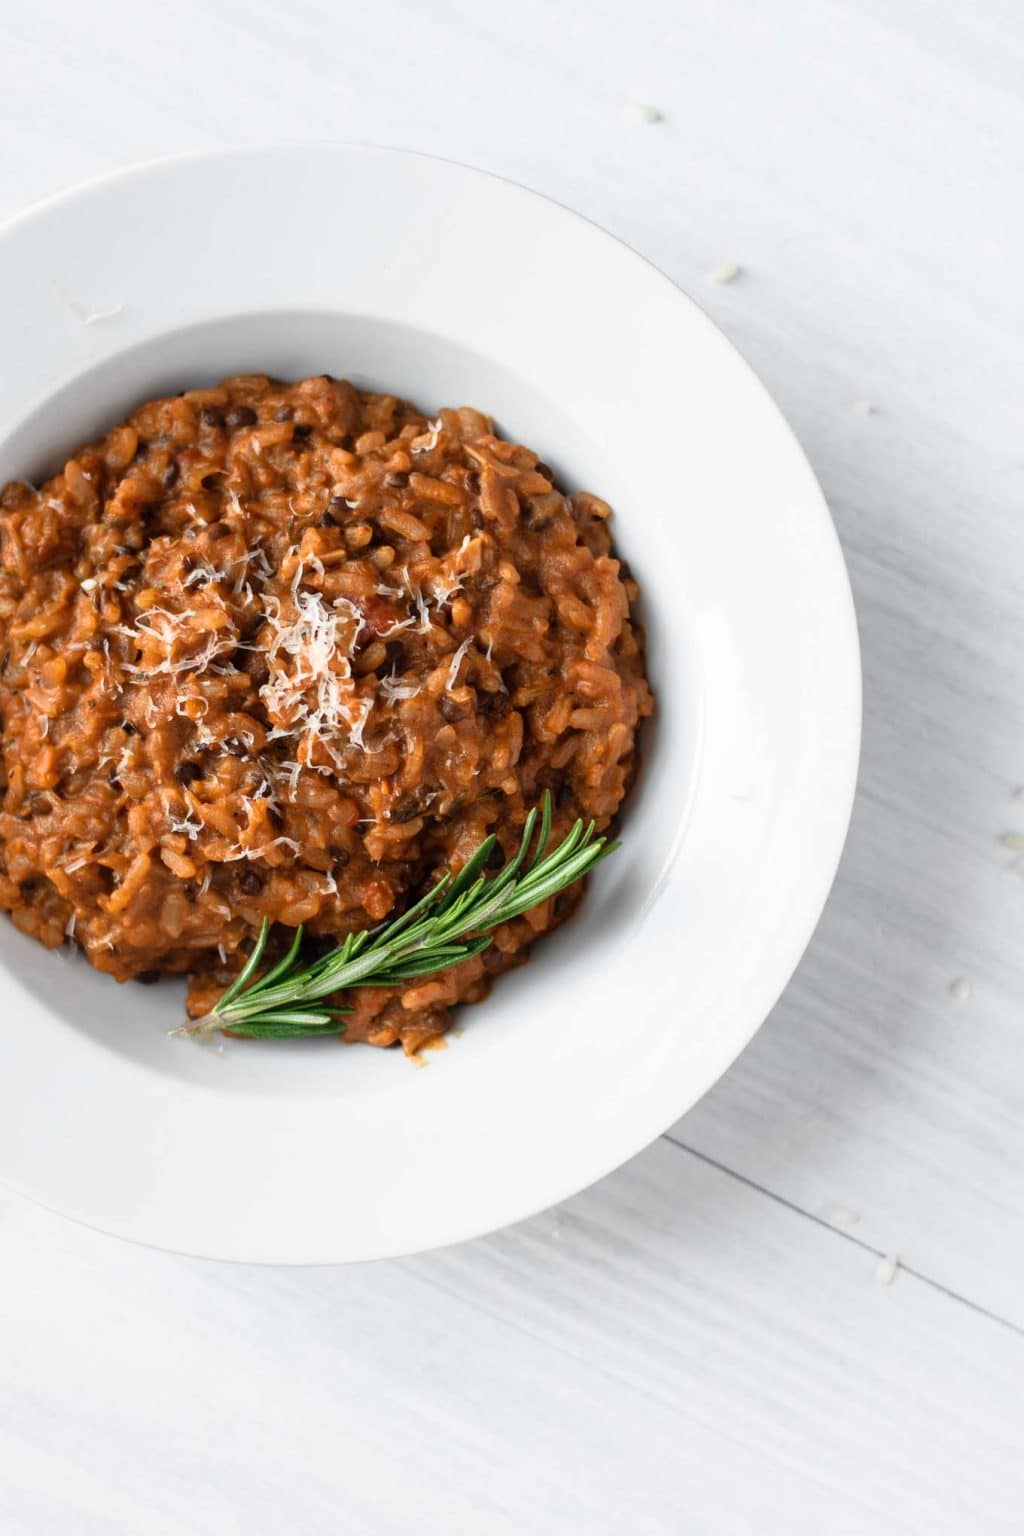 vegan risotto bolognese served with vegan parmesan and fresh rosemary sprig